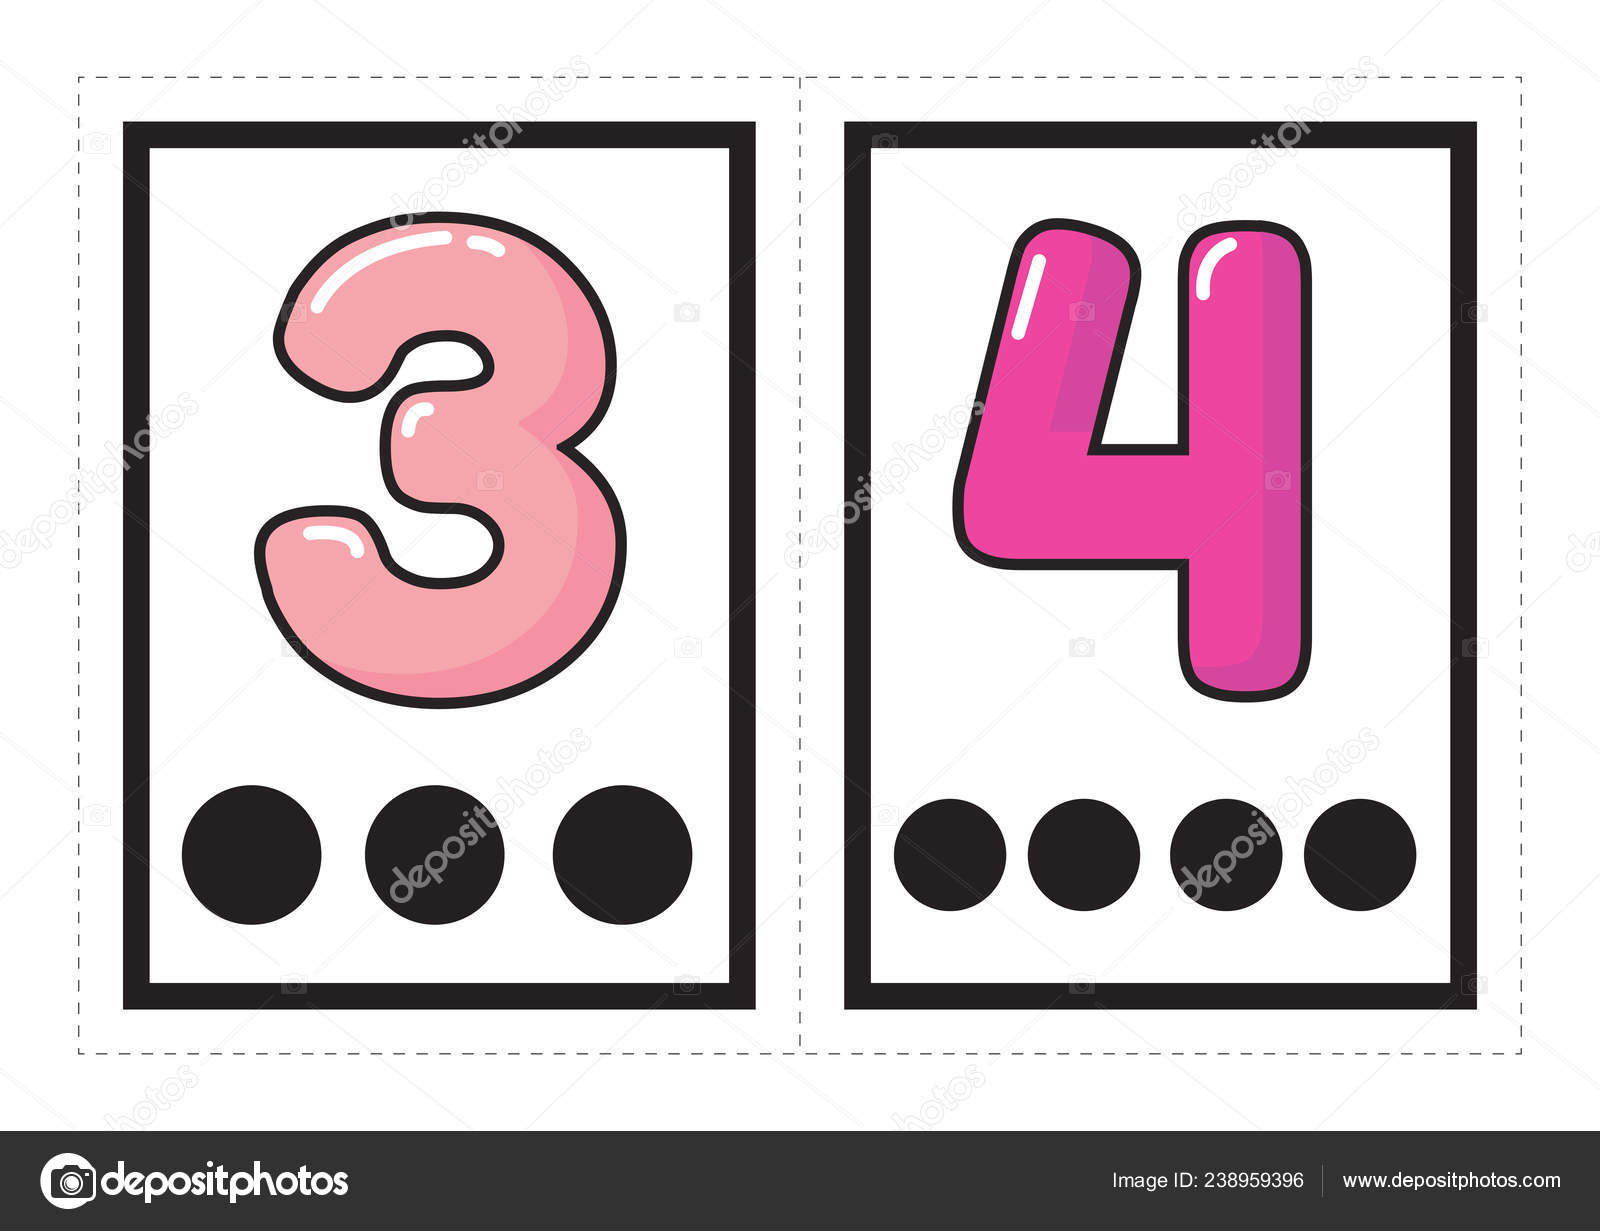 picture about Printable Number Cards named Printable Flash Card Range Figures Corresponding Selection